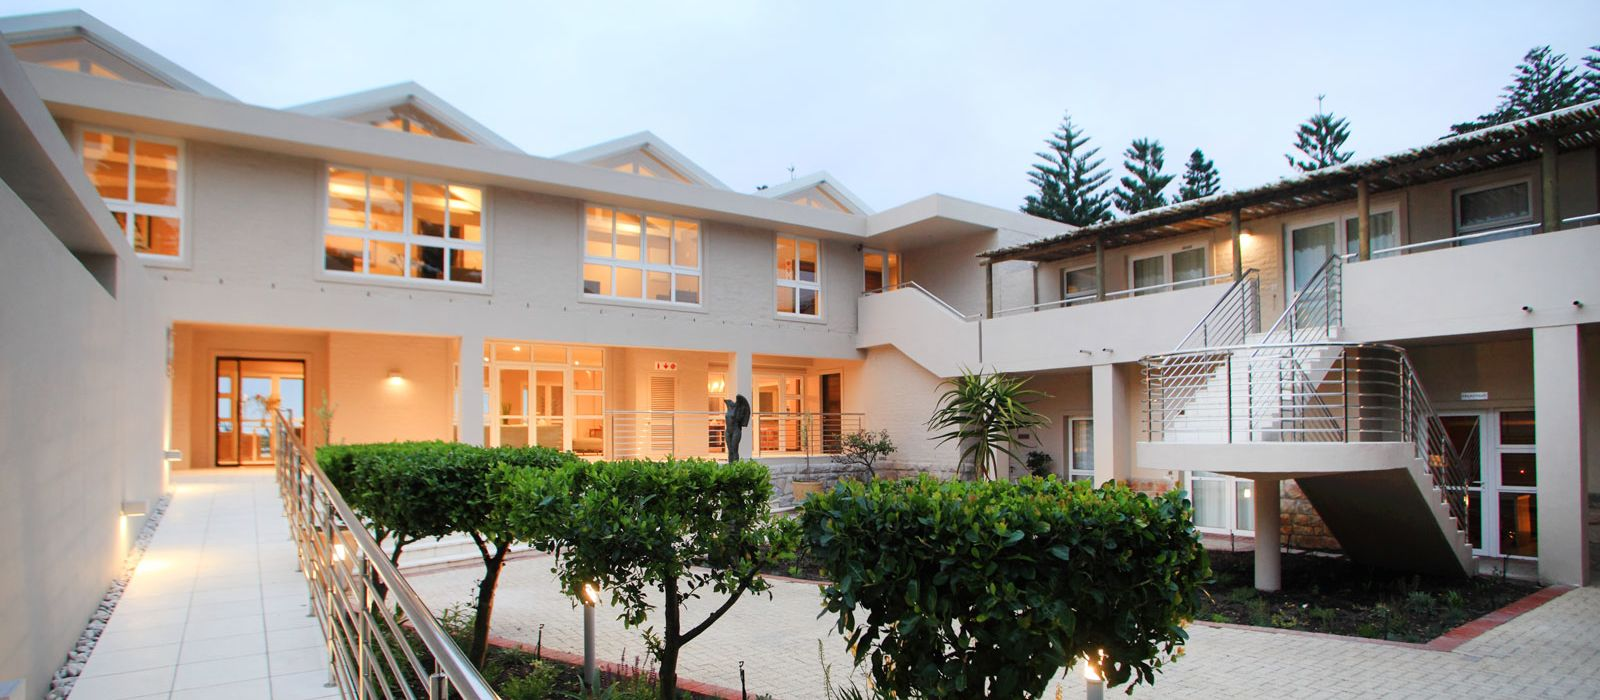 Hotel Abalone Guesthouse South Africa